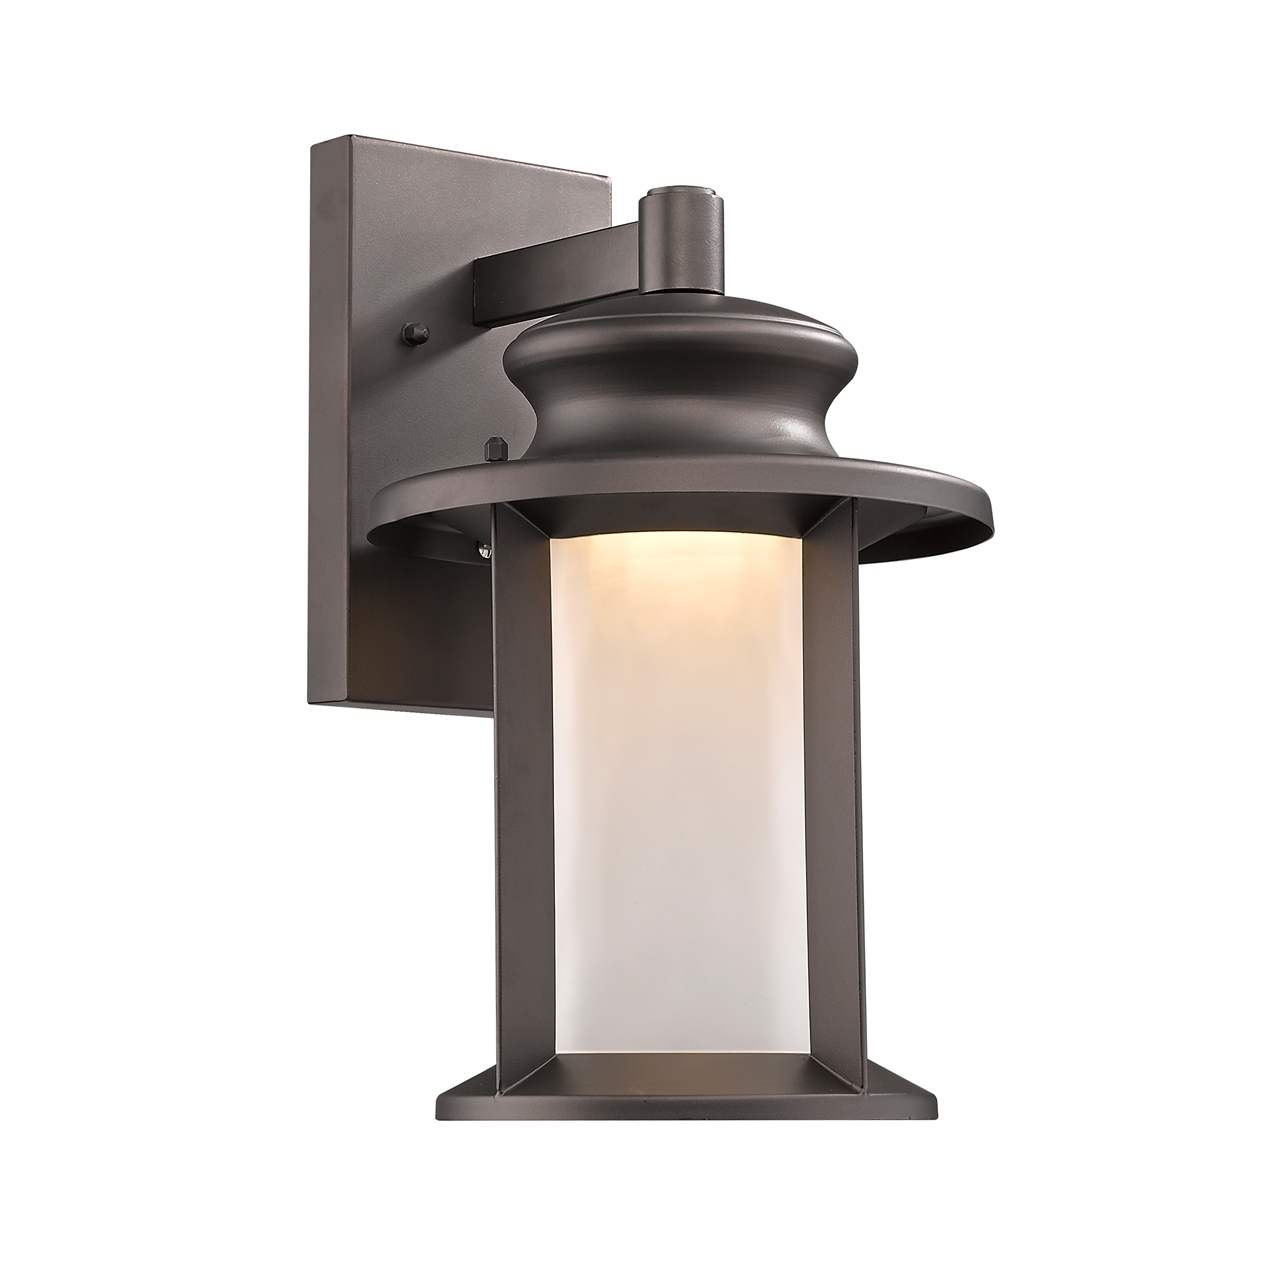 Picture Of CH2S074RB14 ODL LED Outdoor Sconce